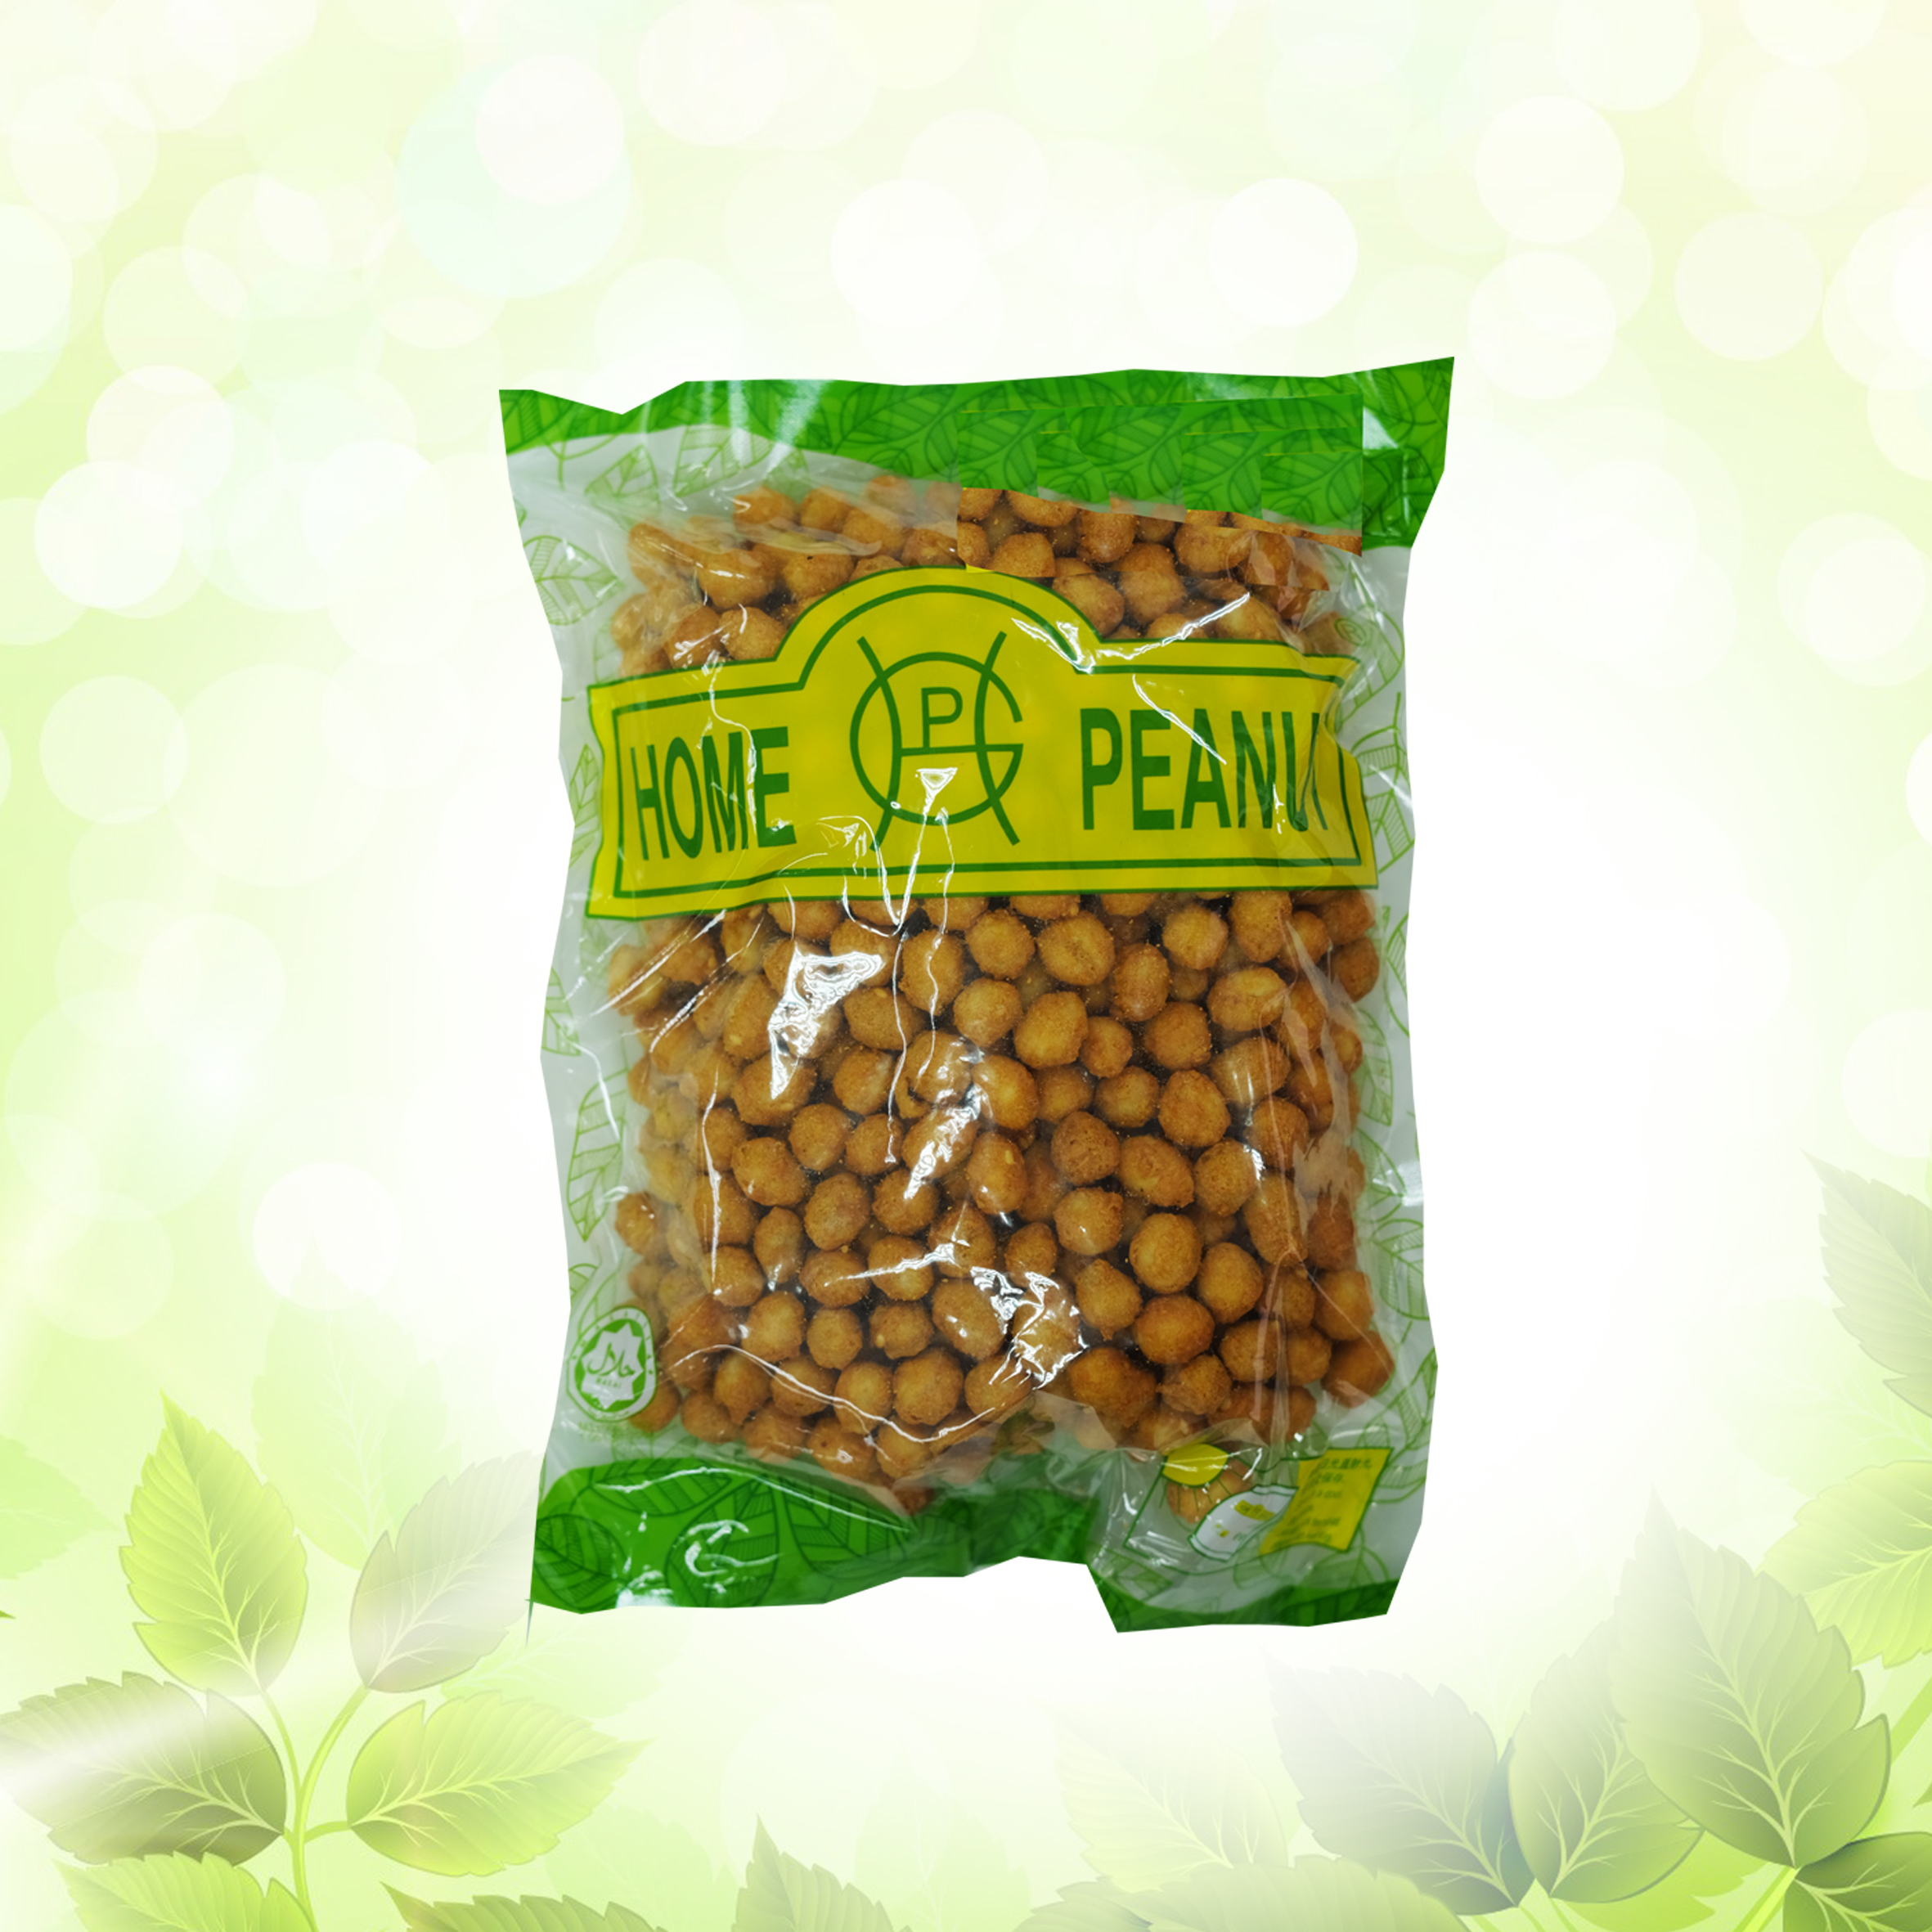 Curry Peanut Sesame Home Garden Front Images Packaging.jpg